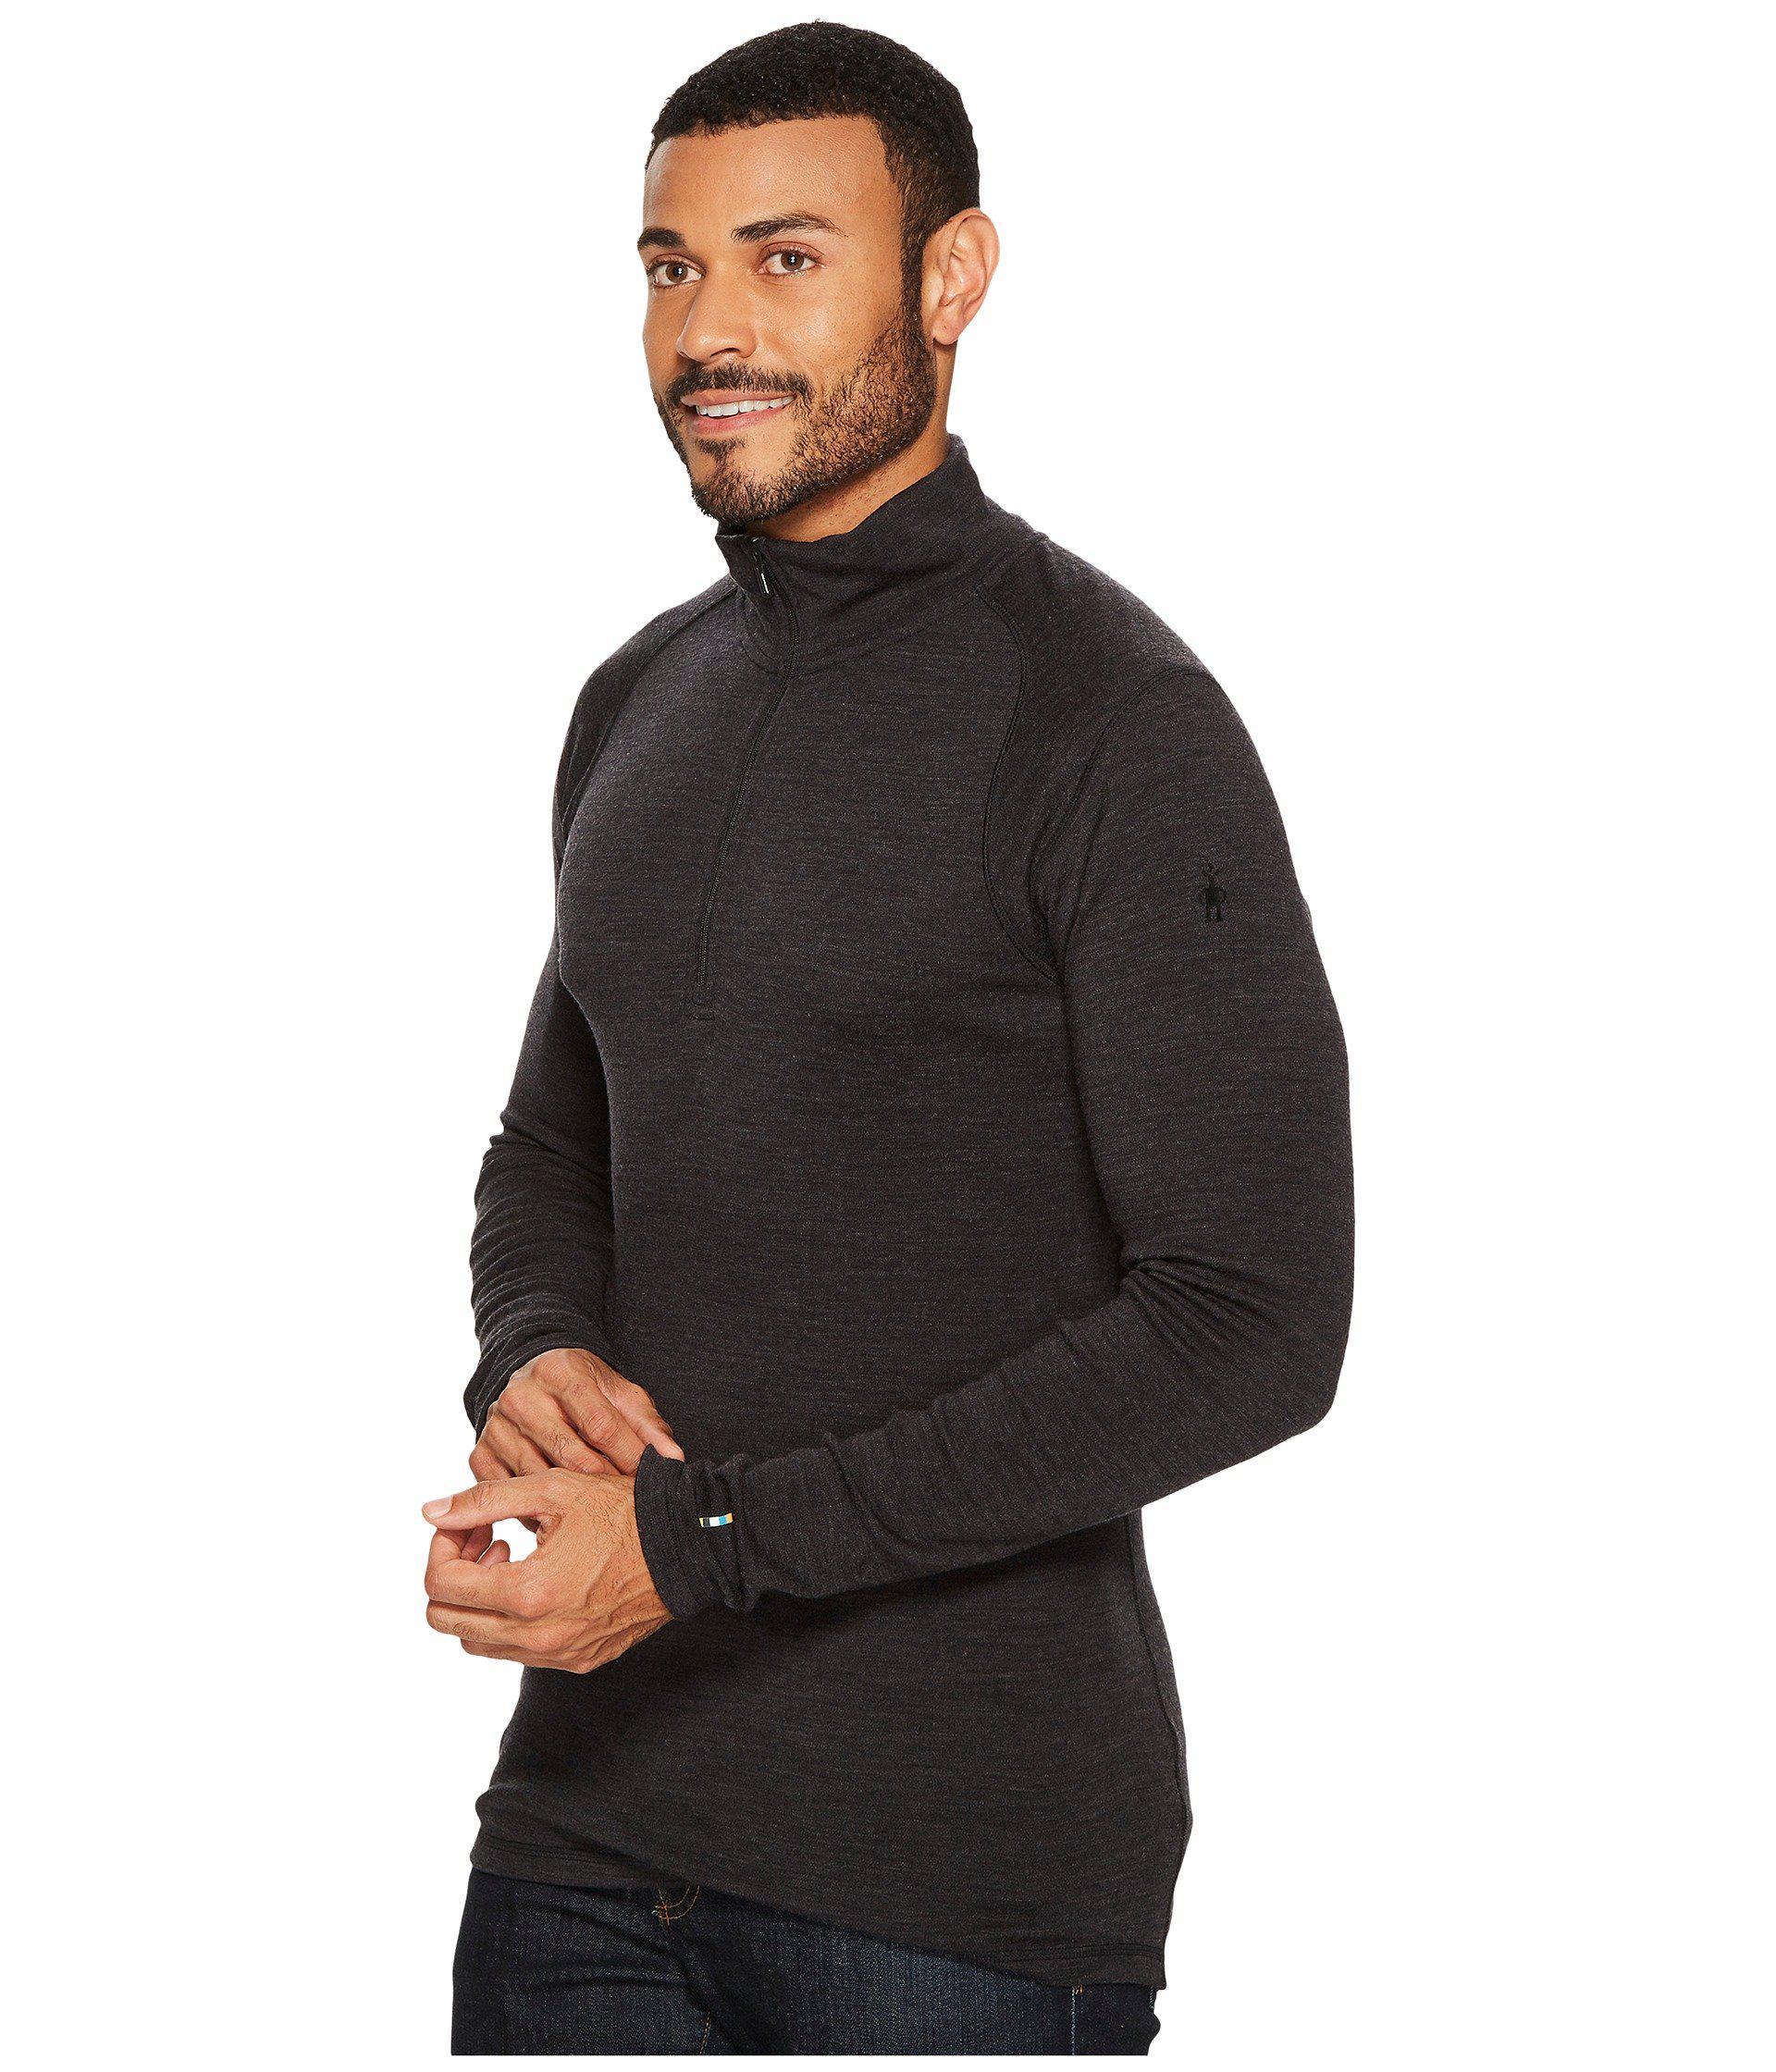 6687489e194e Lyst - Smartwool Nts Mid 250 Zip T Top (charcoal) Men s Long Sleeve  Pullover for Men